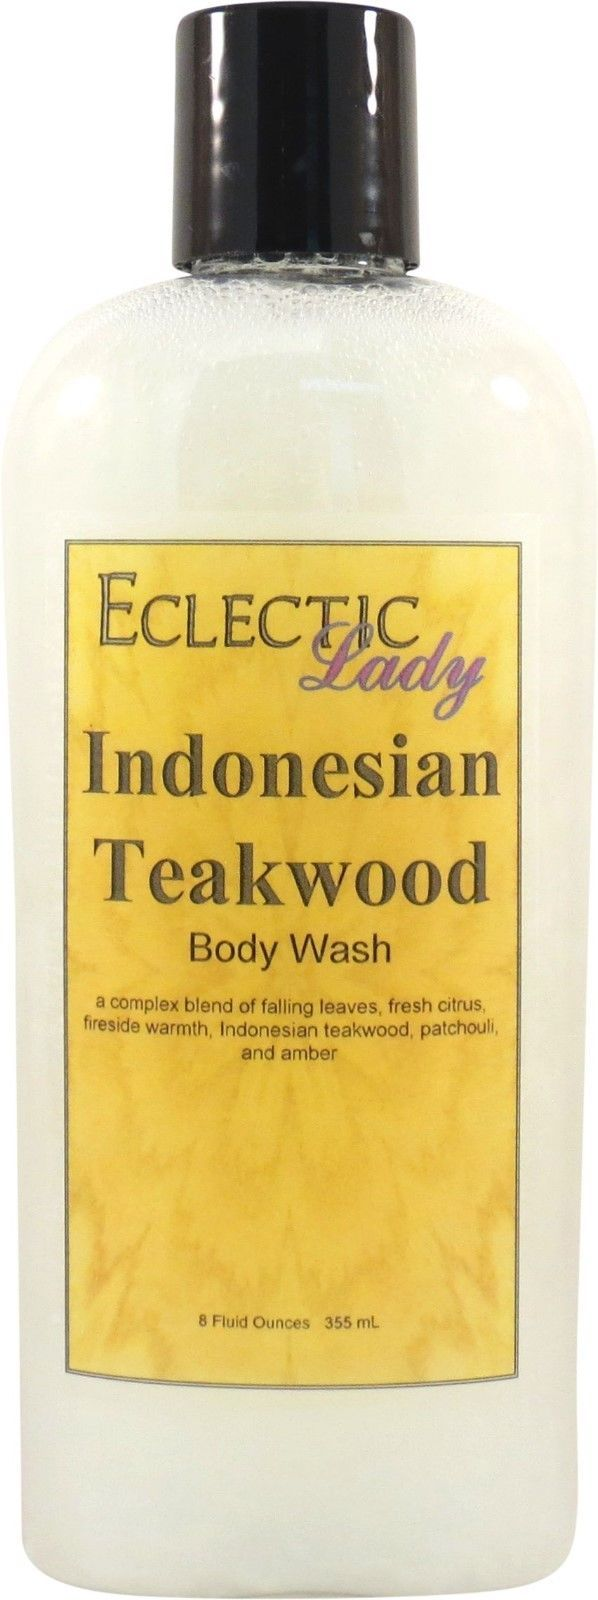 Primary image for Indonesian Teakwood Body Wash